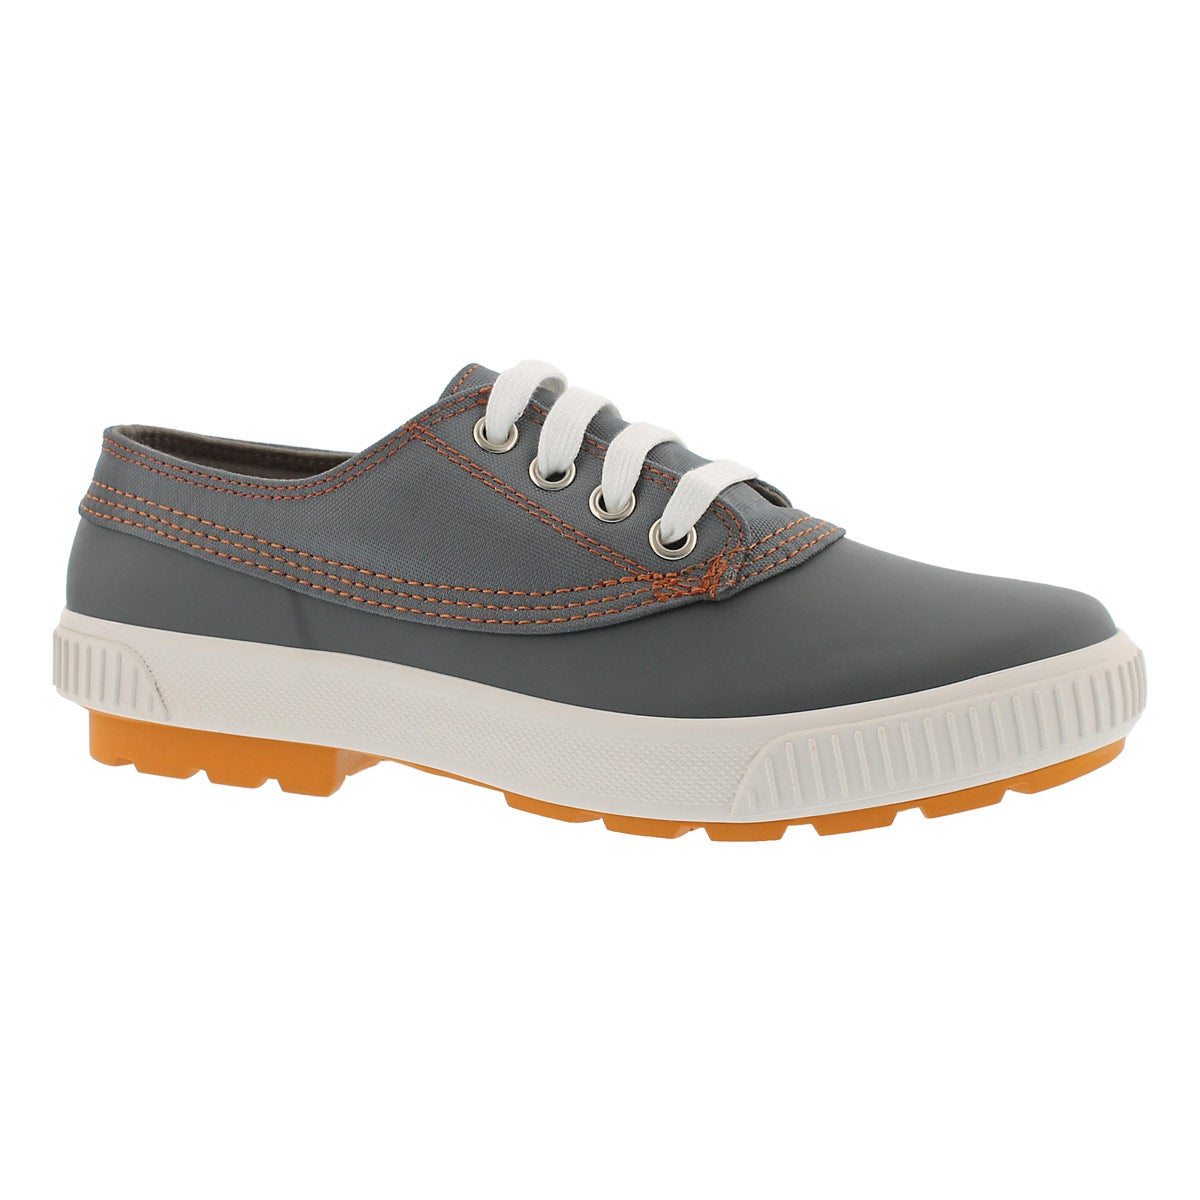 Women's DASH concrete waterproof lace up duckies